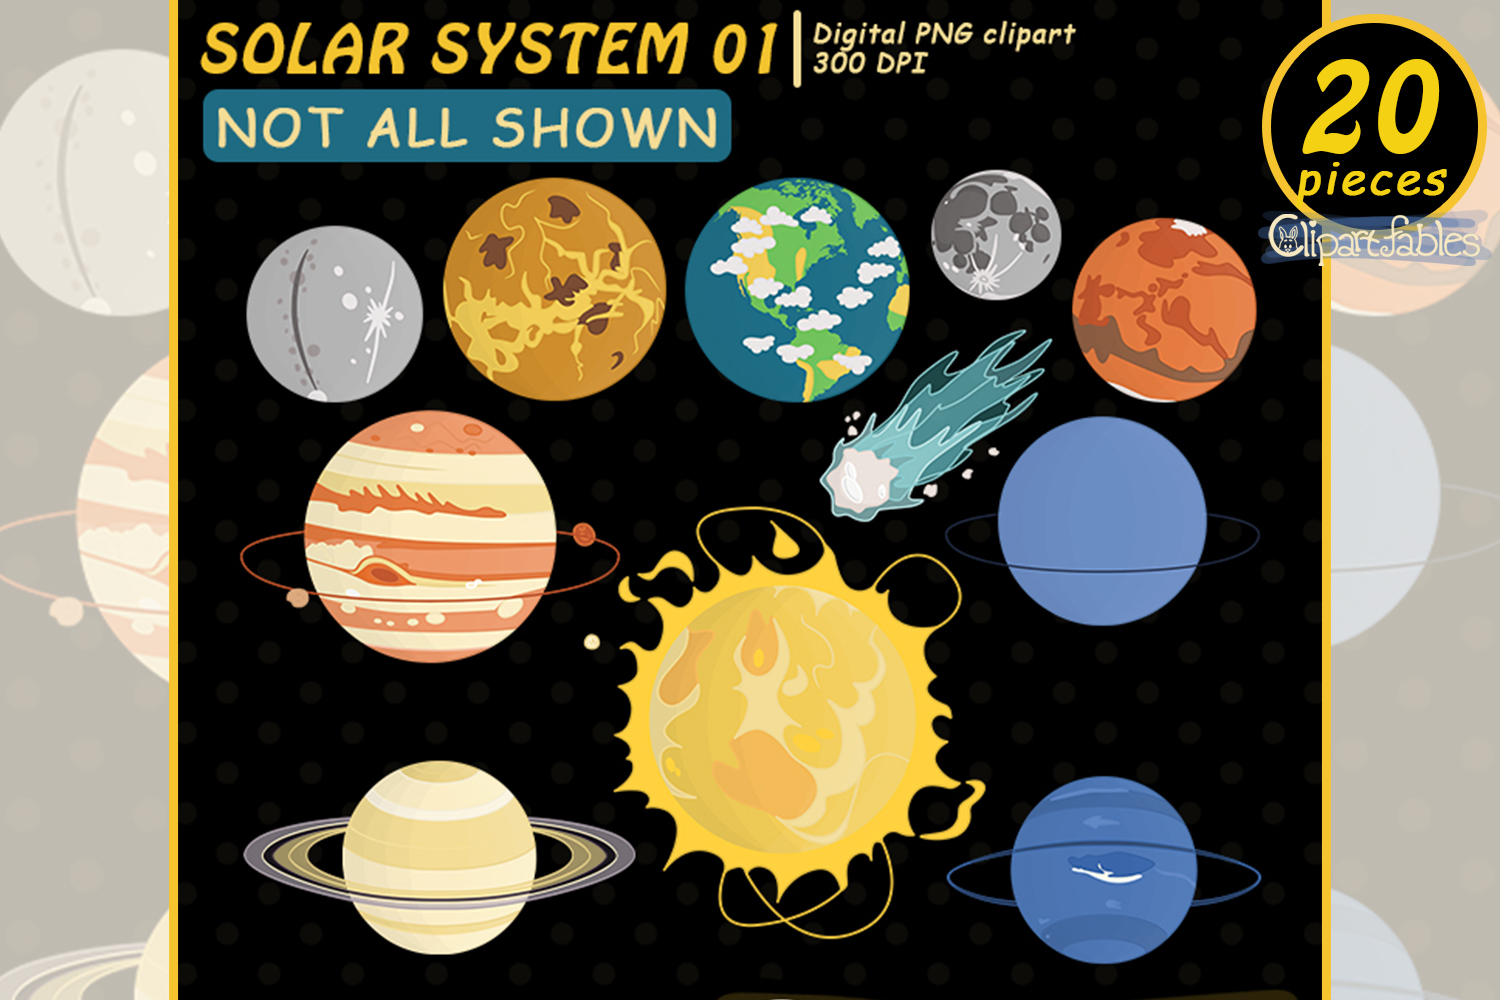 Solar system clipart, Planet clip art, Cute Space design example image 1